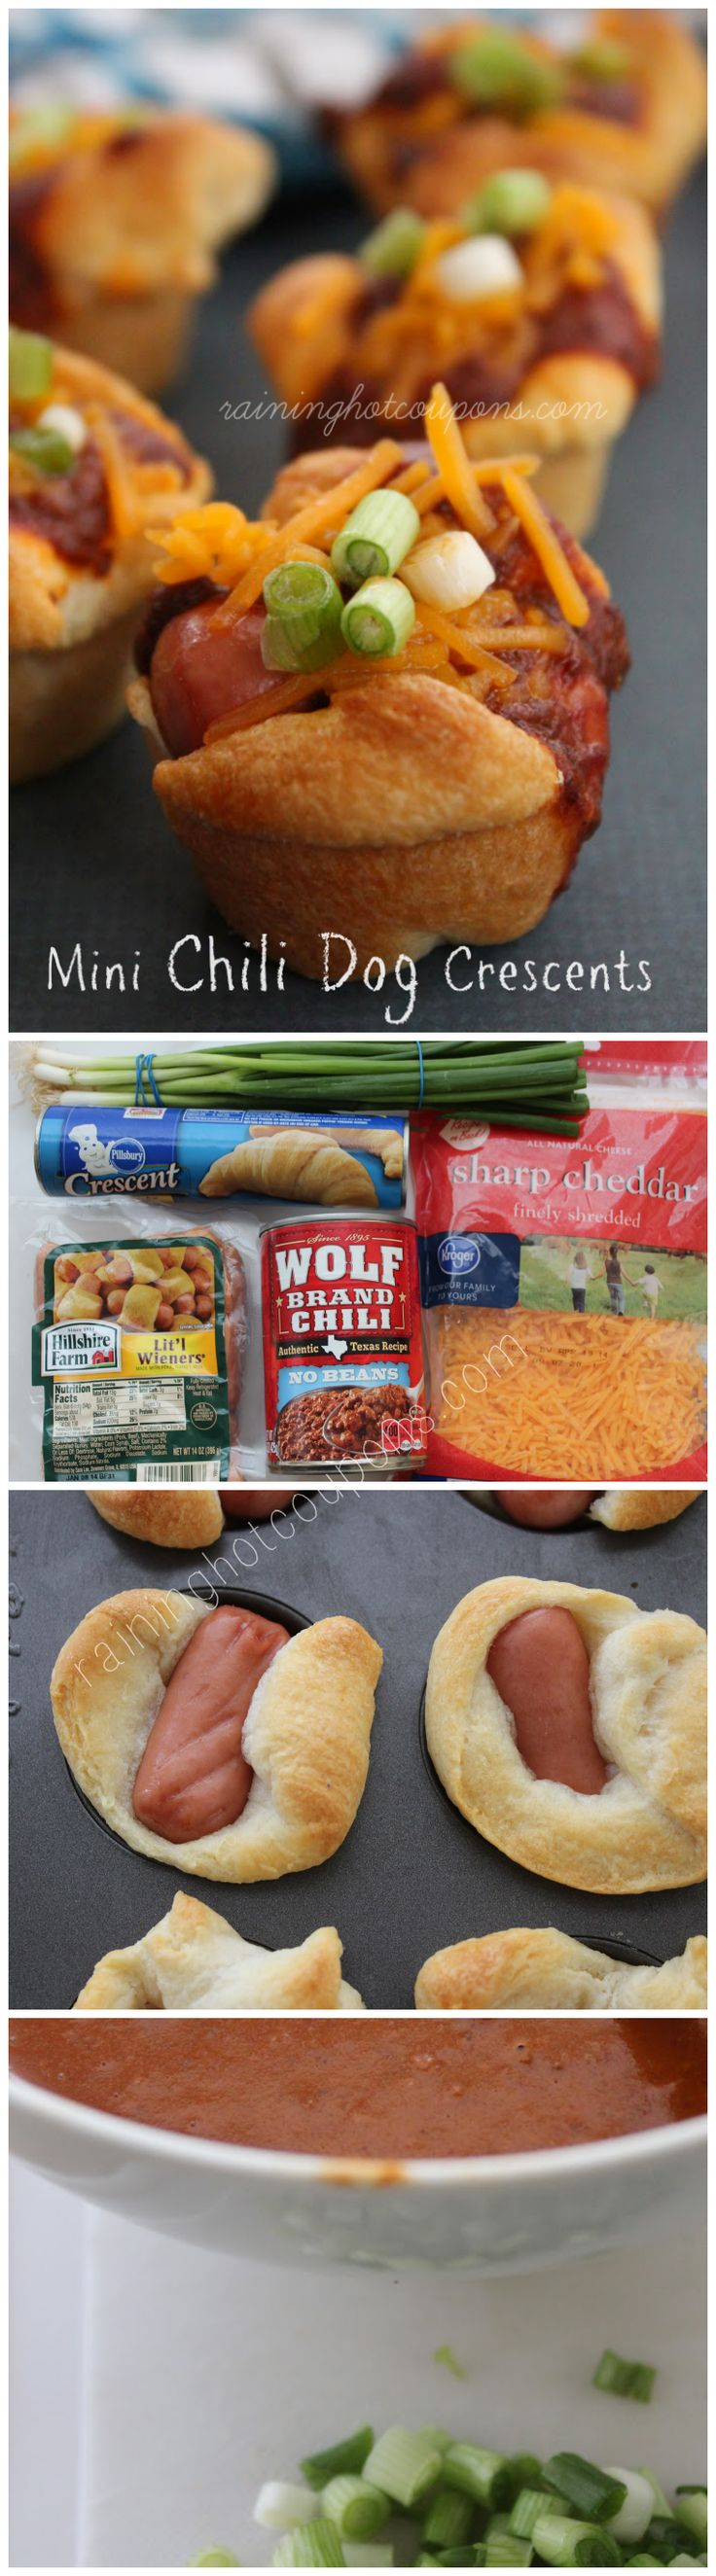 Mini Chili Dog Crescents - SO YUMMY!